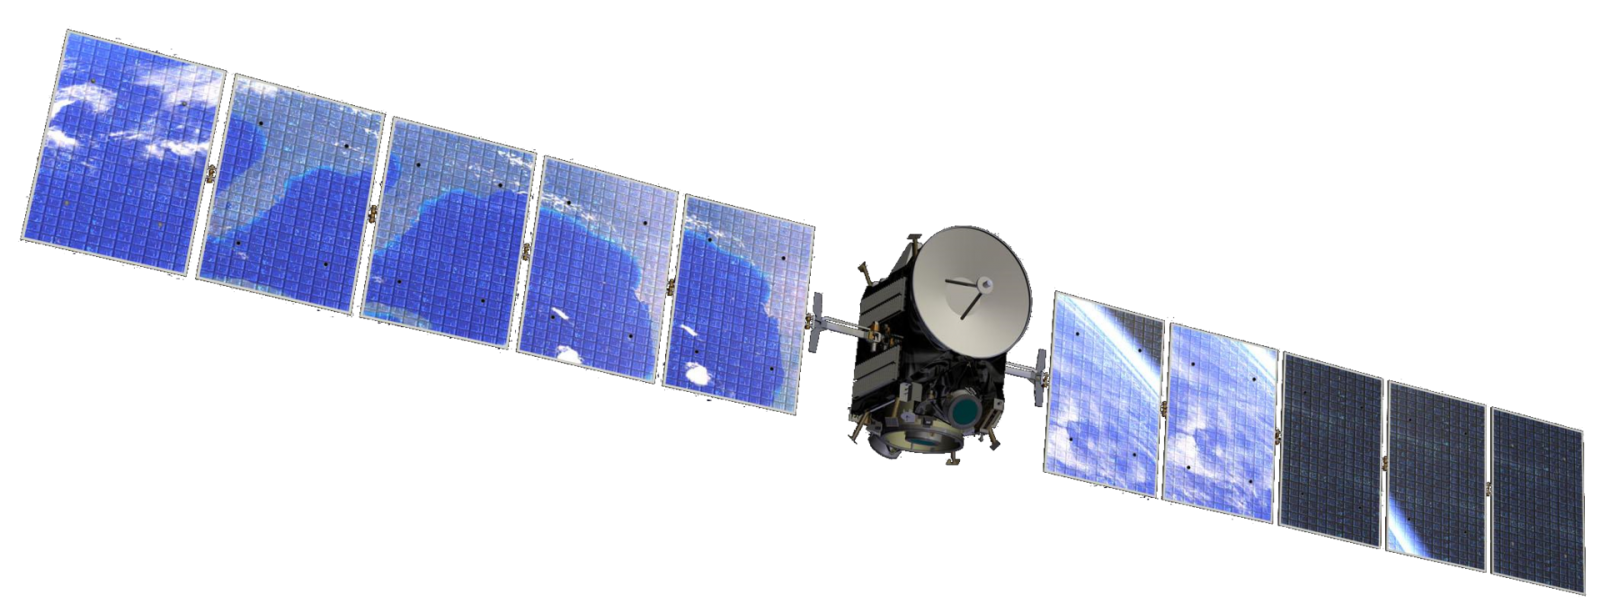 NASA's Dawn spacecraft has concluded a mission that saw the spacecraft traverse 4.3 billion miles (6.9 billion kilometers) over the course of 11 years. Image Credit: NASA / JPL-Caltech